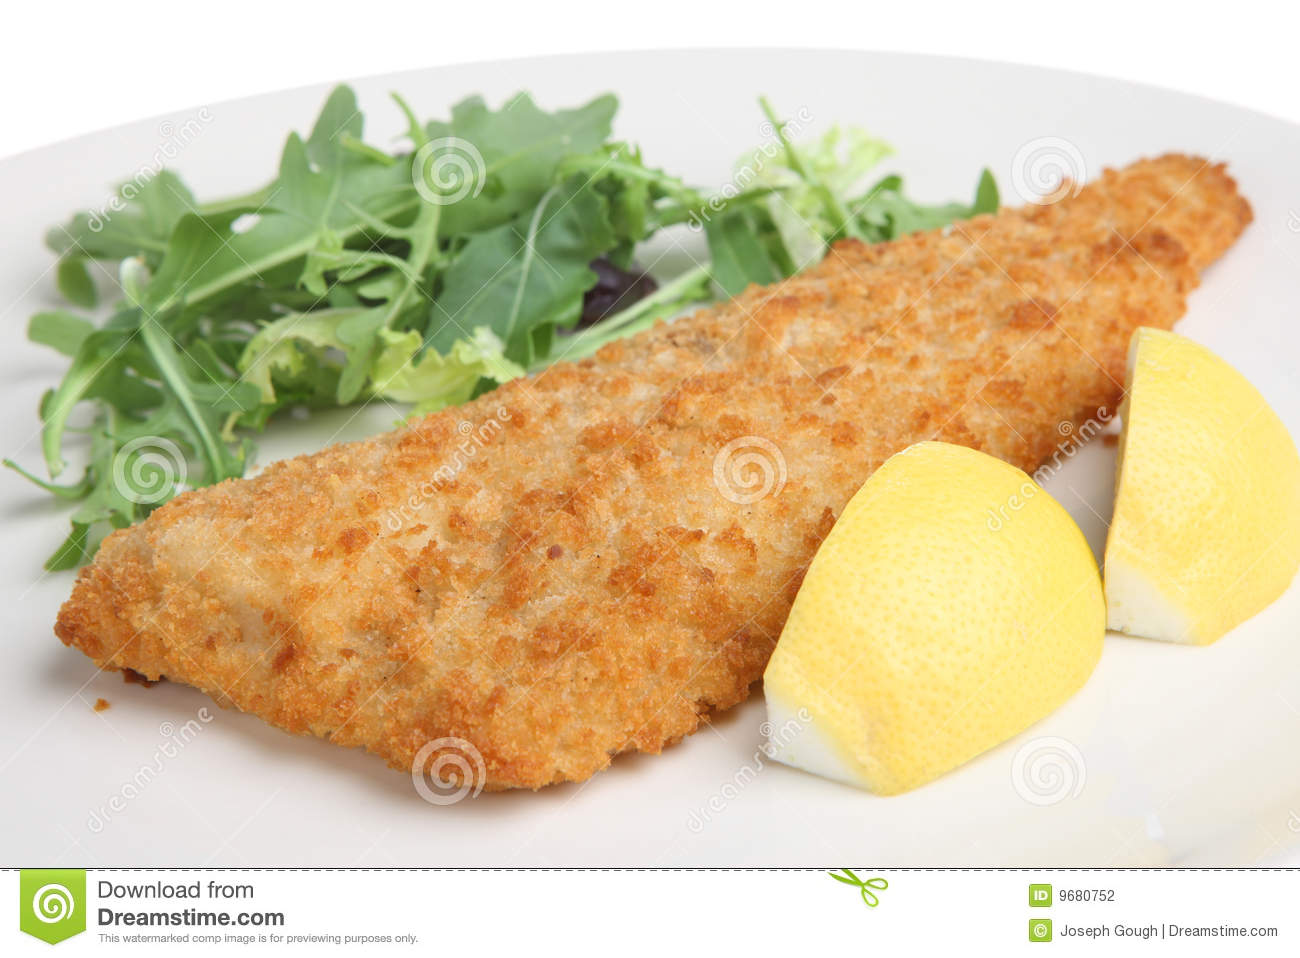 Breaded fried fish fillet stock photography image 9680752 for How to make breaded fish